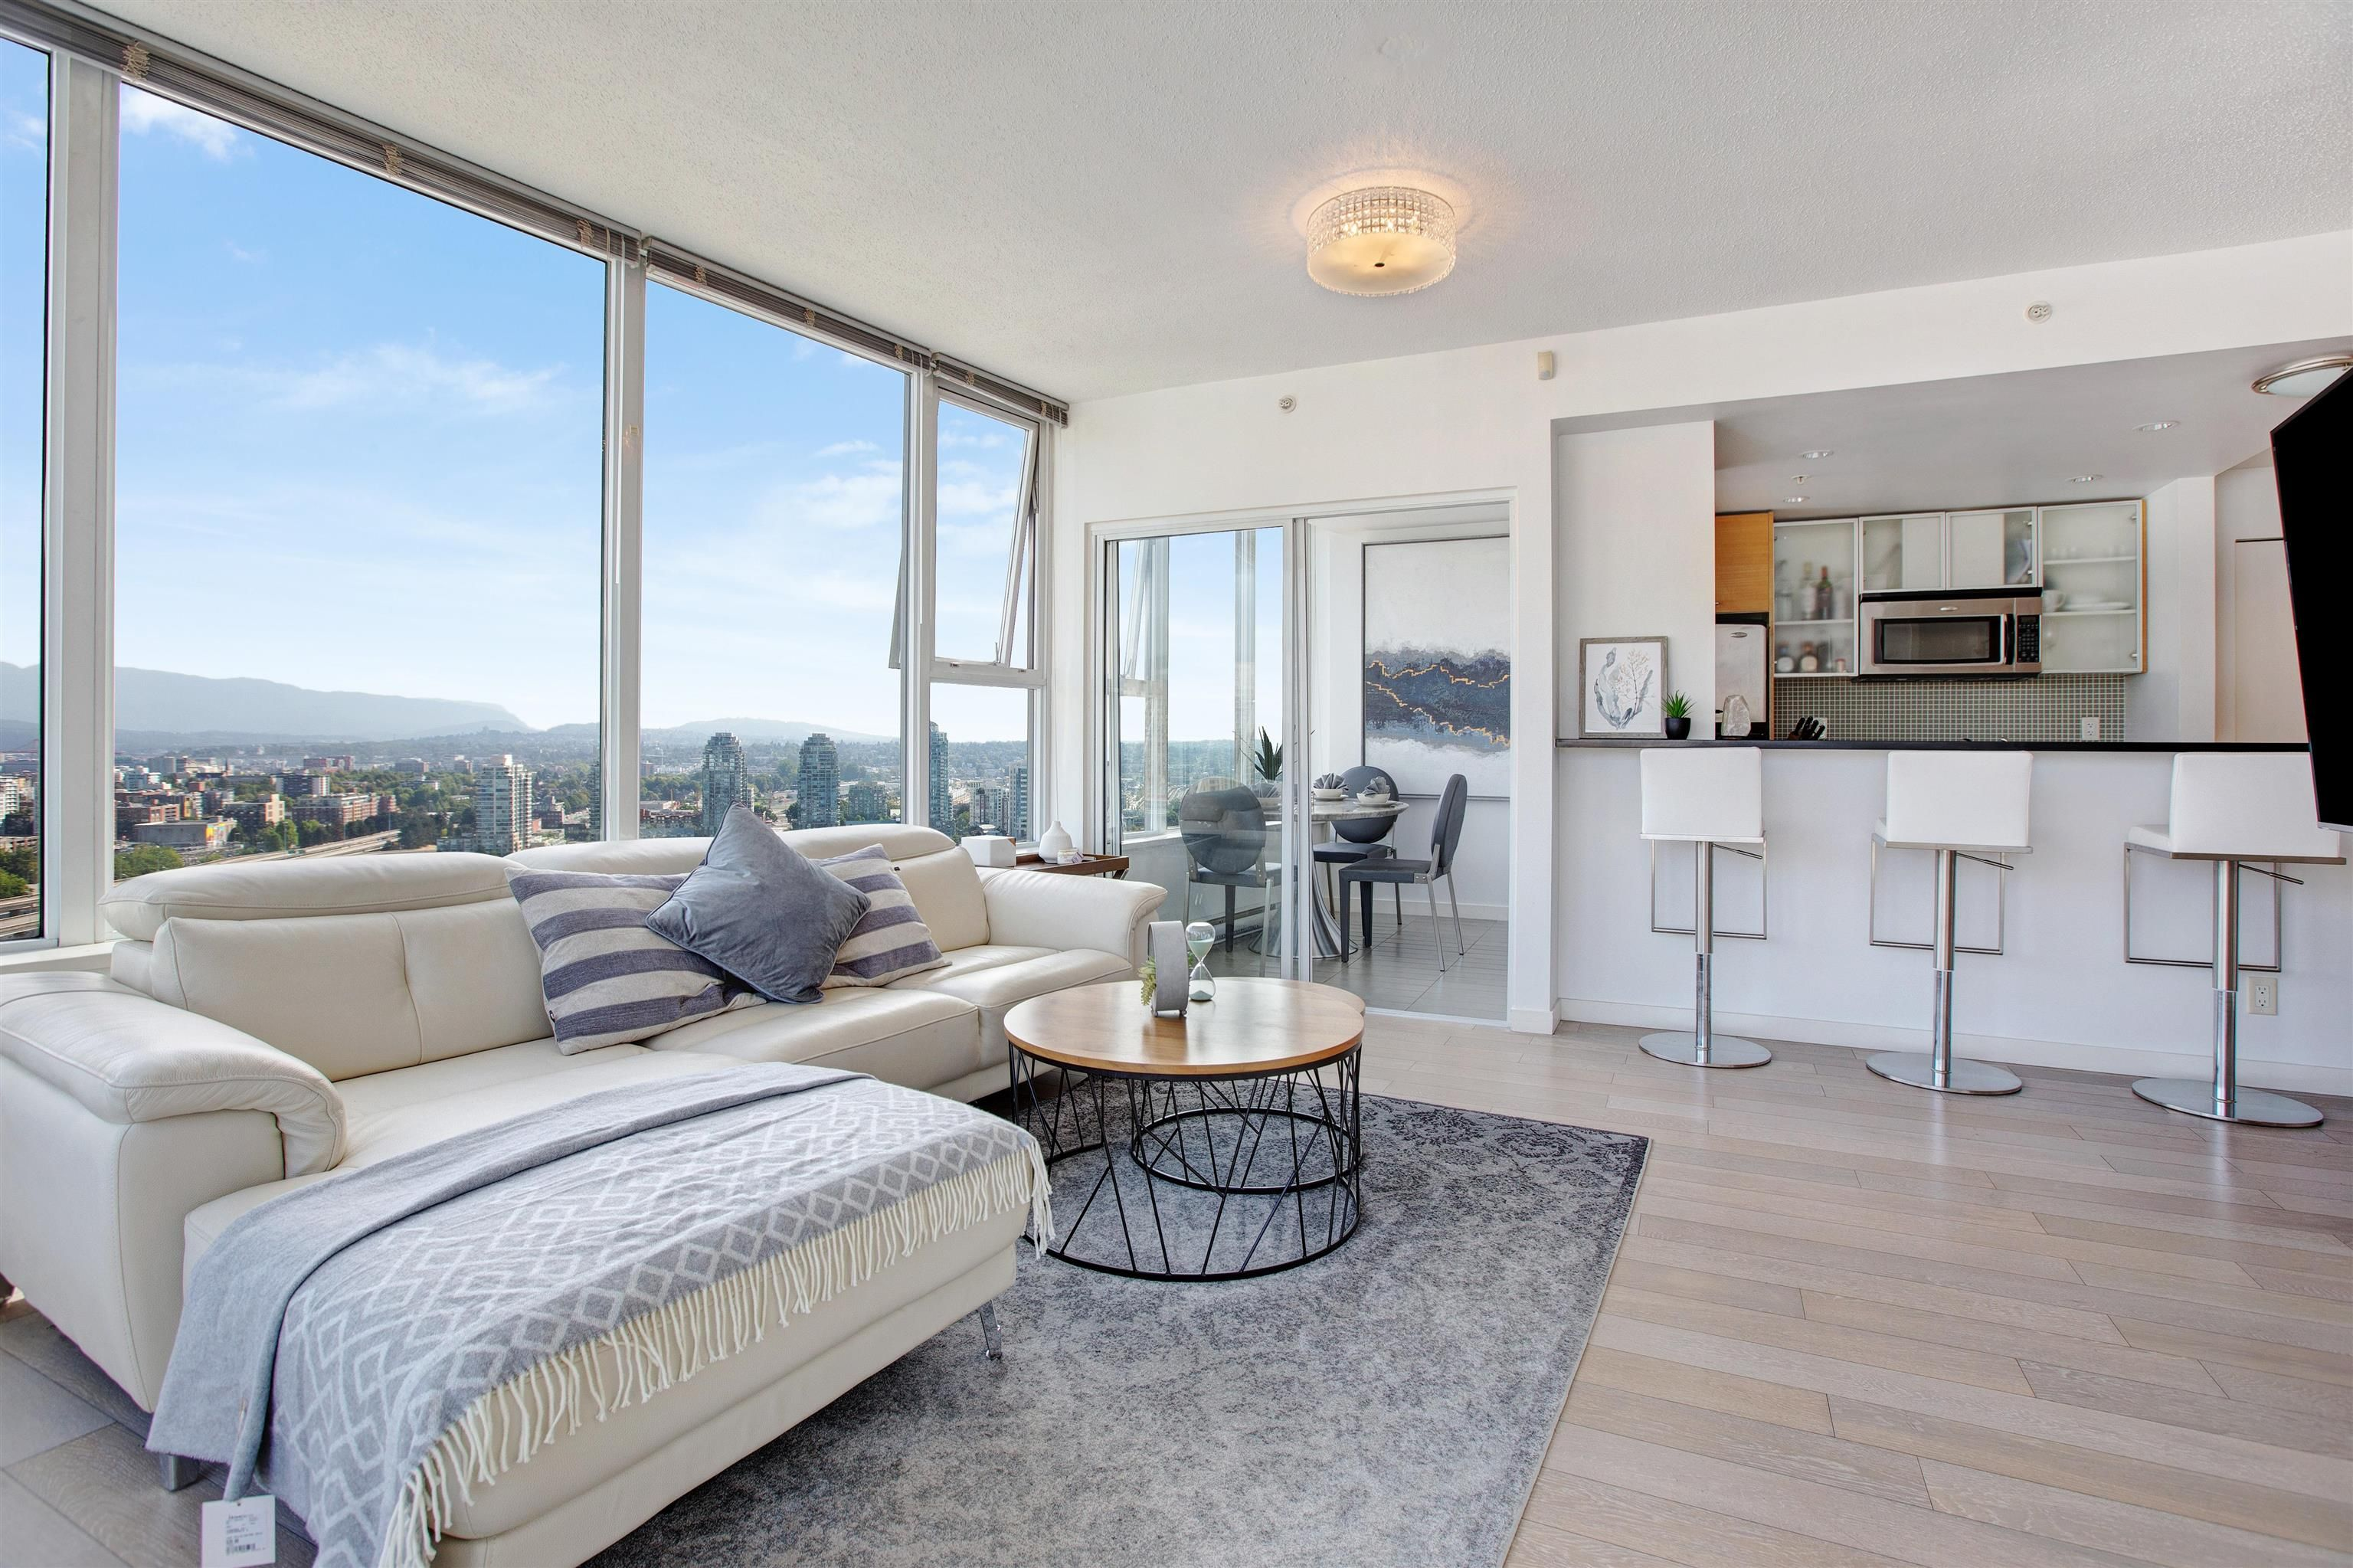 """Main Photo: 3307 33 SMITHE Street in Vancouver: Yaletown Condo for sale in """"COOPER'S LOOKOUT"""" (Vancouver West)  : MLS®# R2615498"""